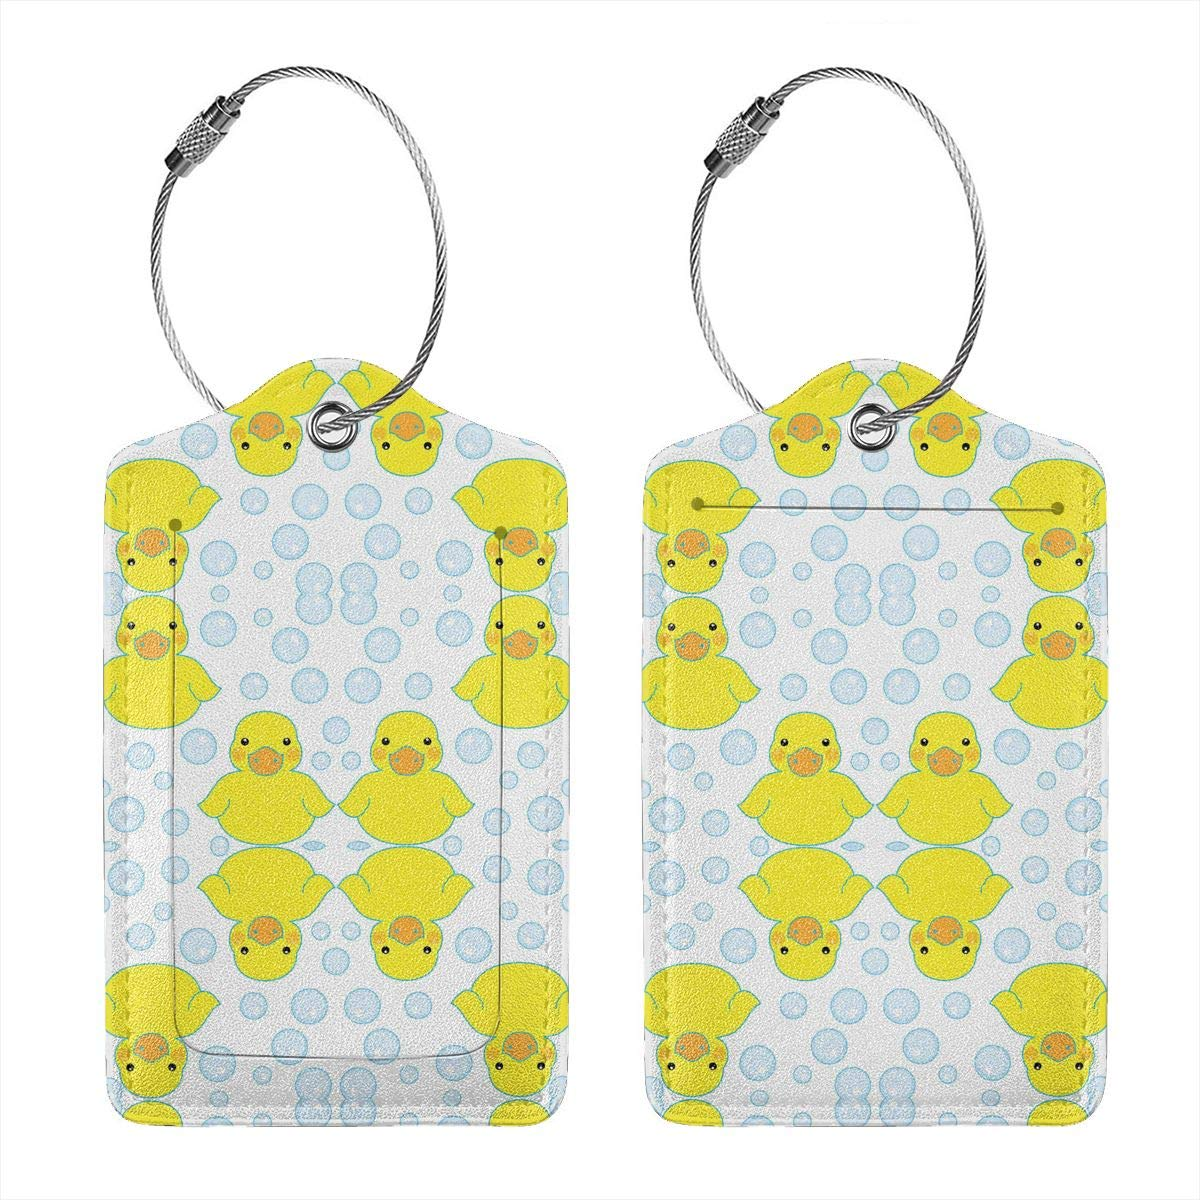 Rubber Ducks and Bubbles 2.7 x 4.6 Blank Tag Key Tags for Christmas Birthday Couples Gift Leather Luggage Tags Full Privacy Cover and Stainless Steel Loop 1 2 4 Pcs Set